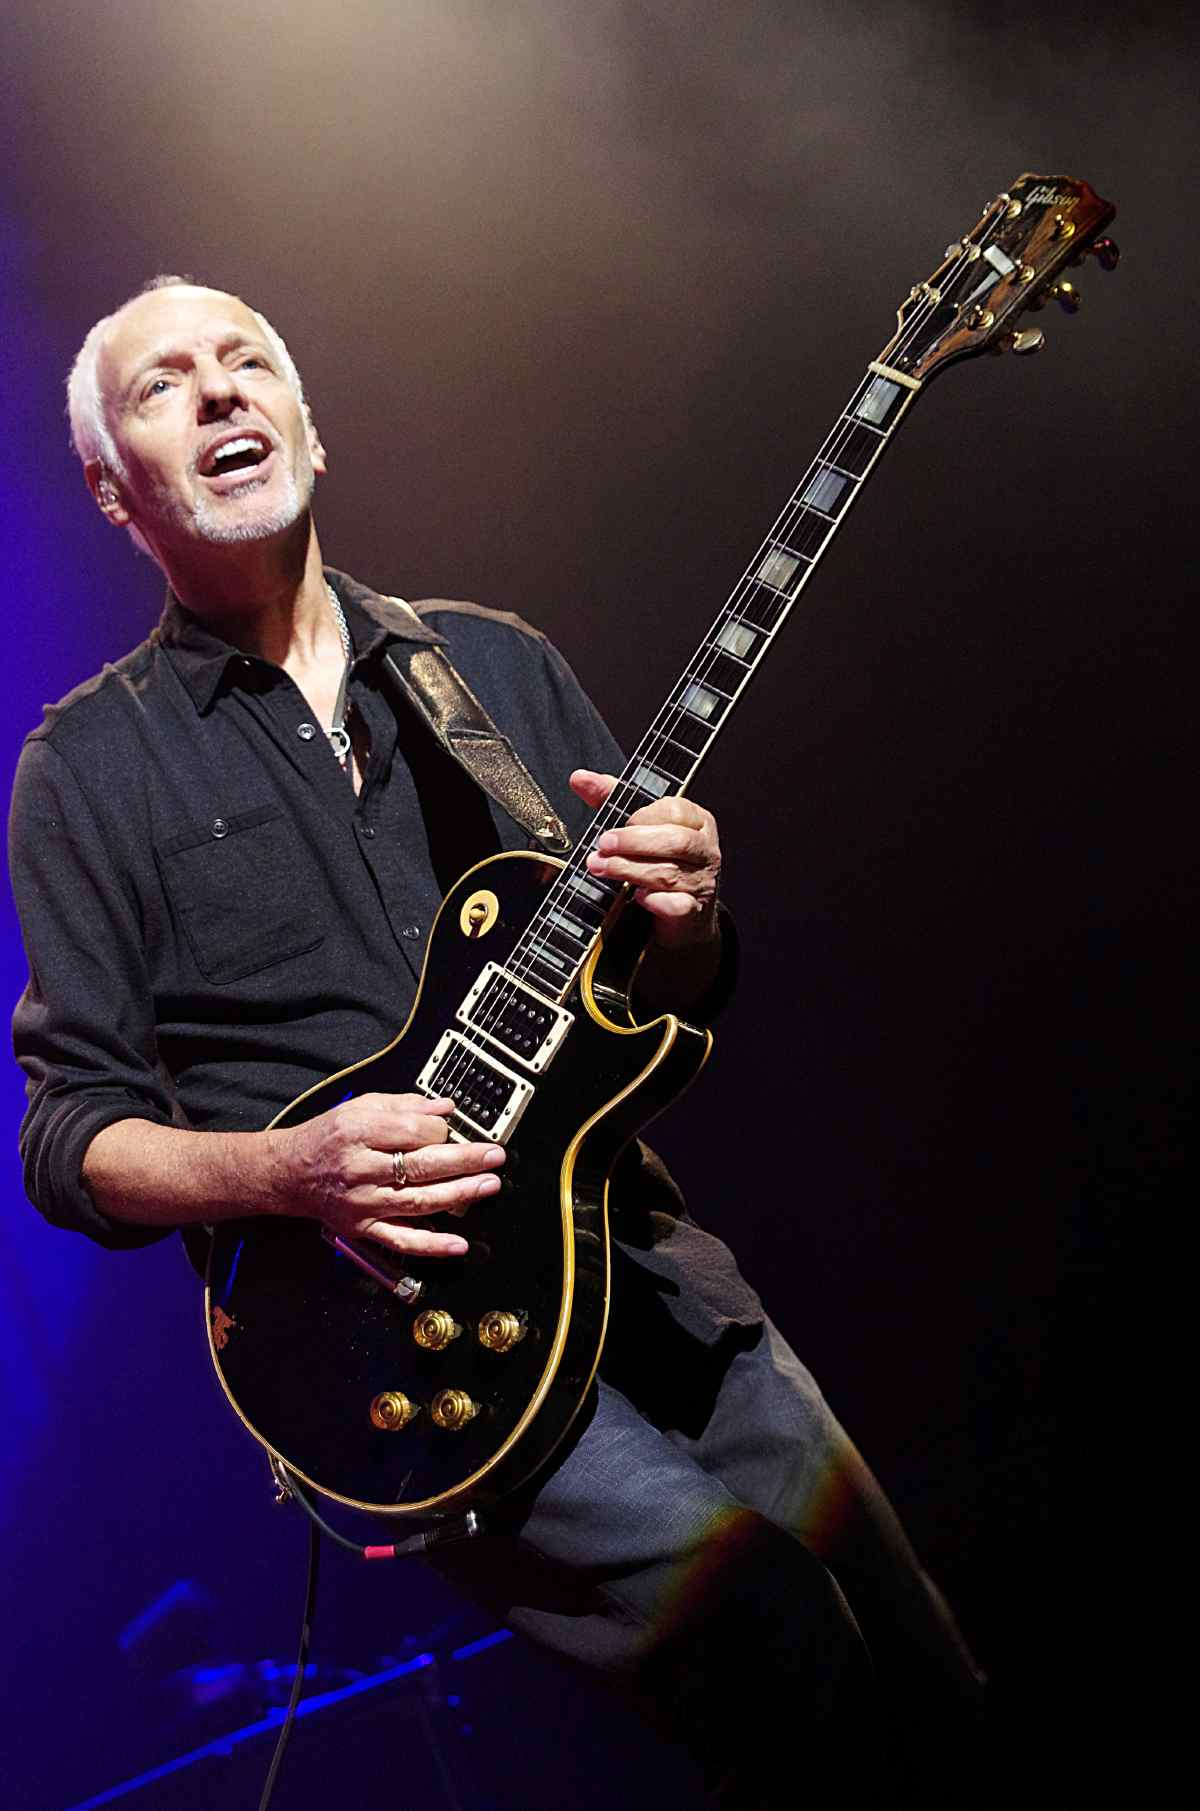 Soundhound Peter Frampton Humble Pie The Life And Times Of Steve Marriott Dvd